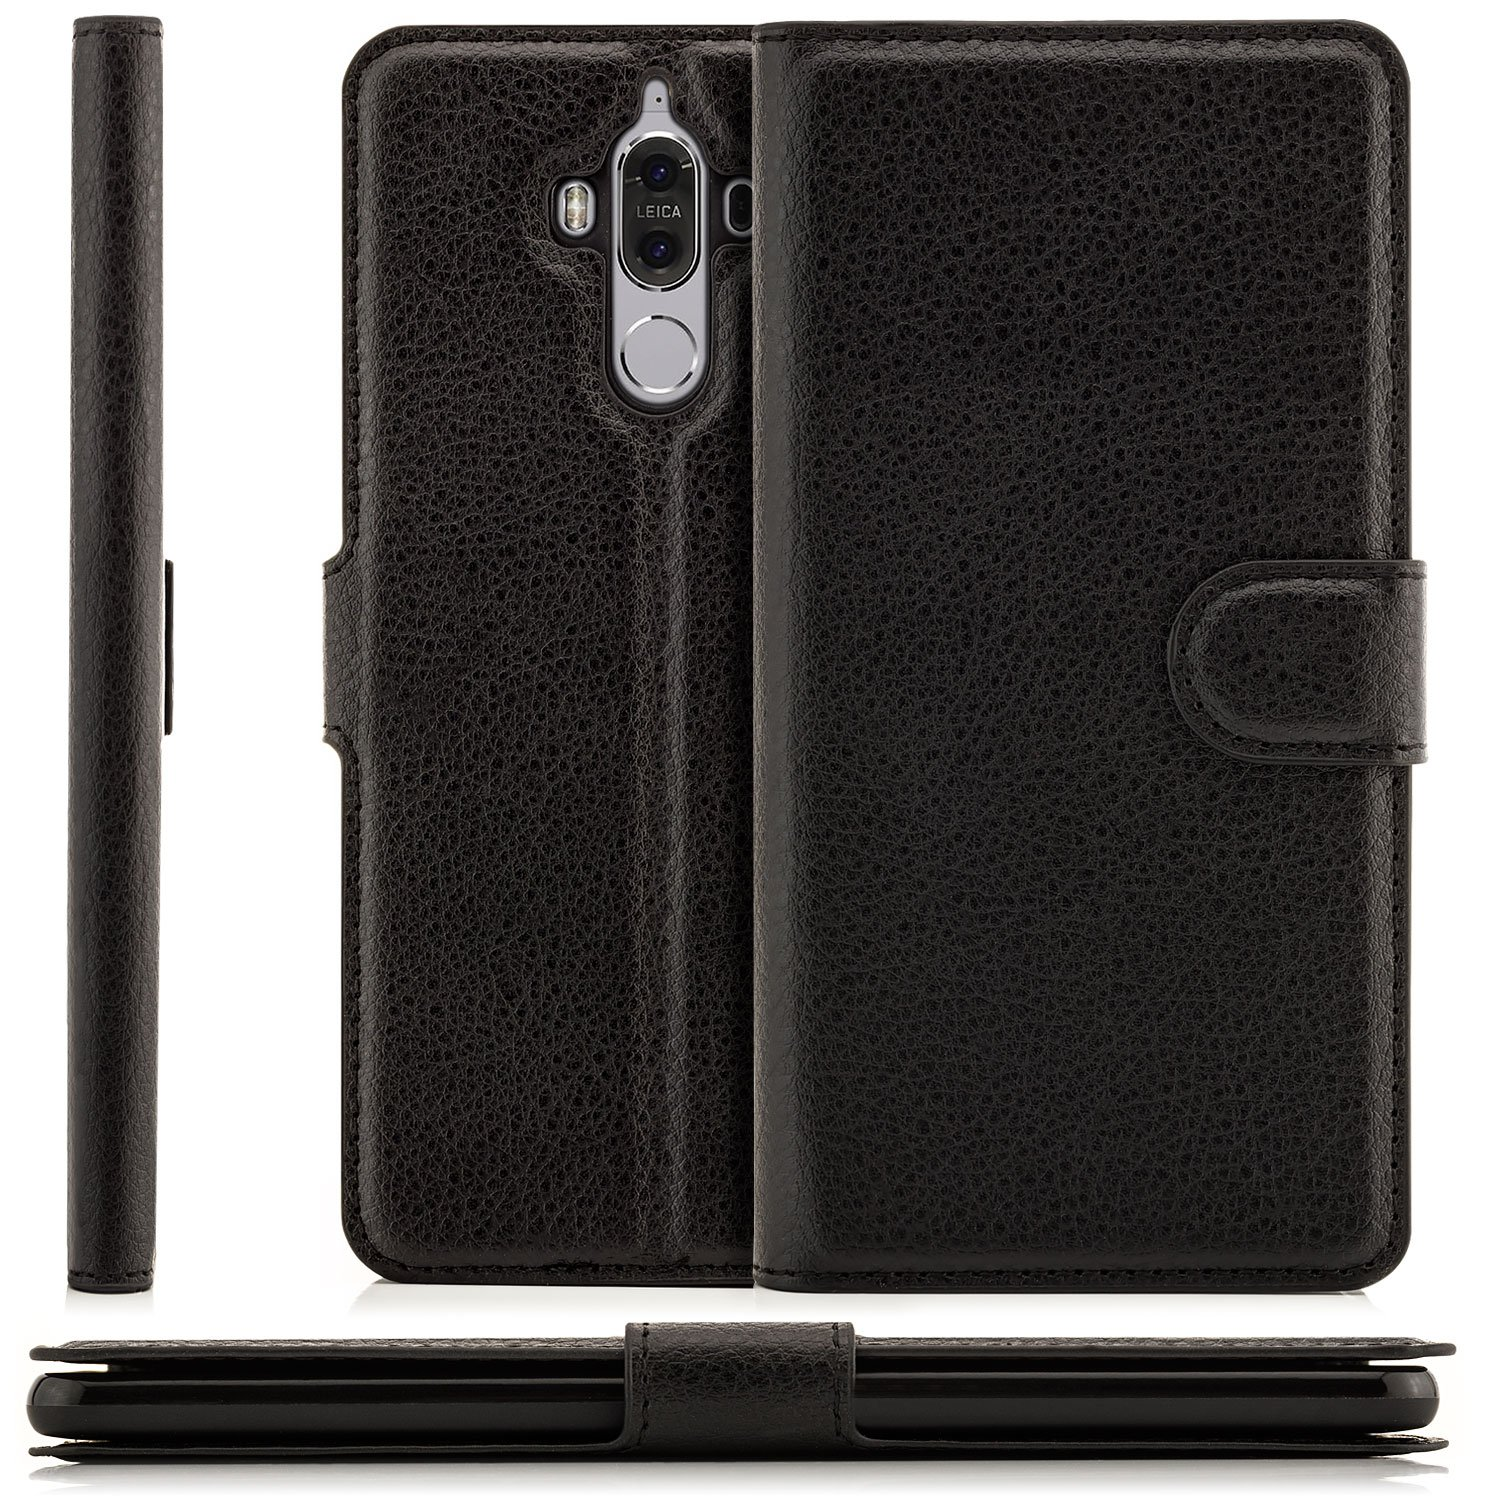 Huawei Mate 9 Case Protector Flip Cover [zanasta] Premium Phone Wallet with Card Holder Slots and Magnetic Closure [Slim Profile], Foldable Stand, Black